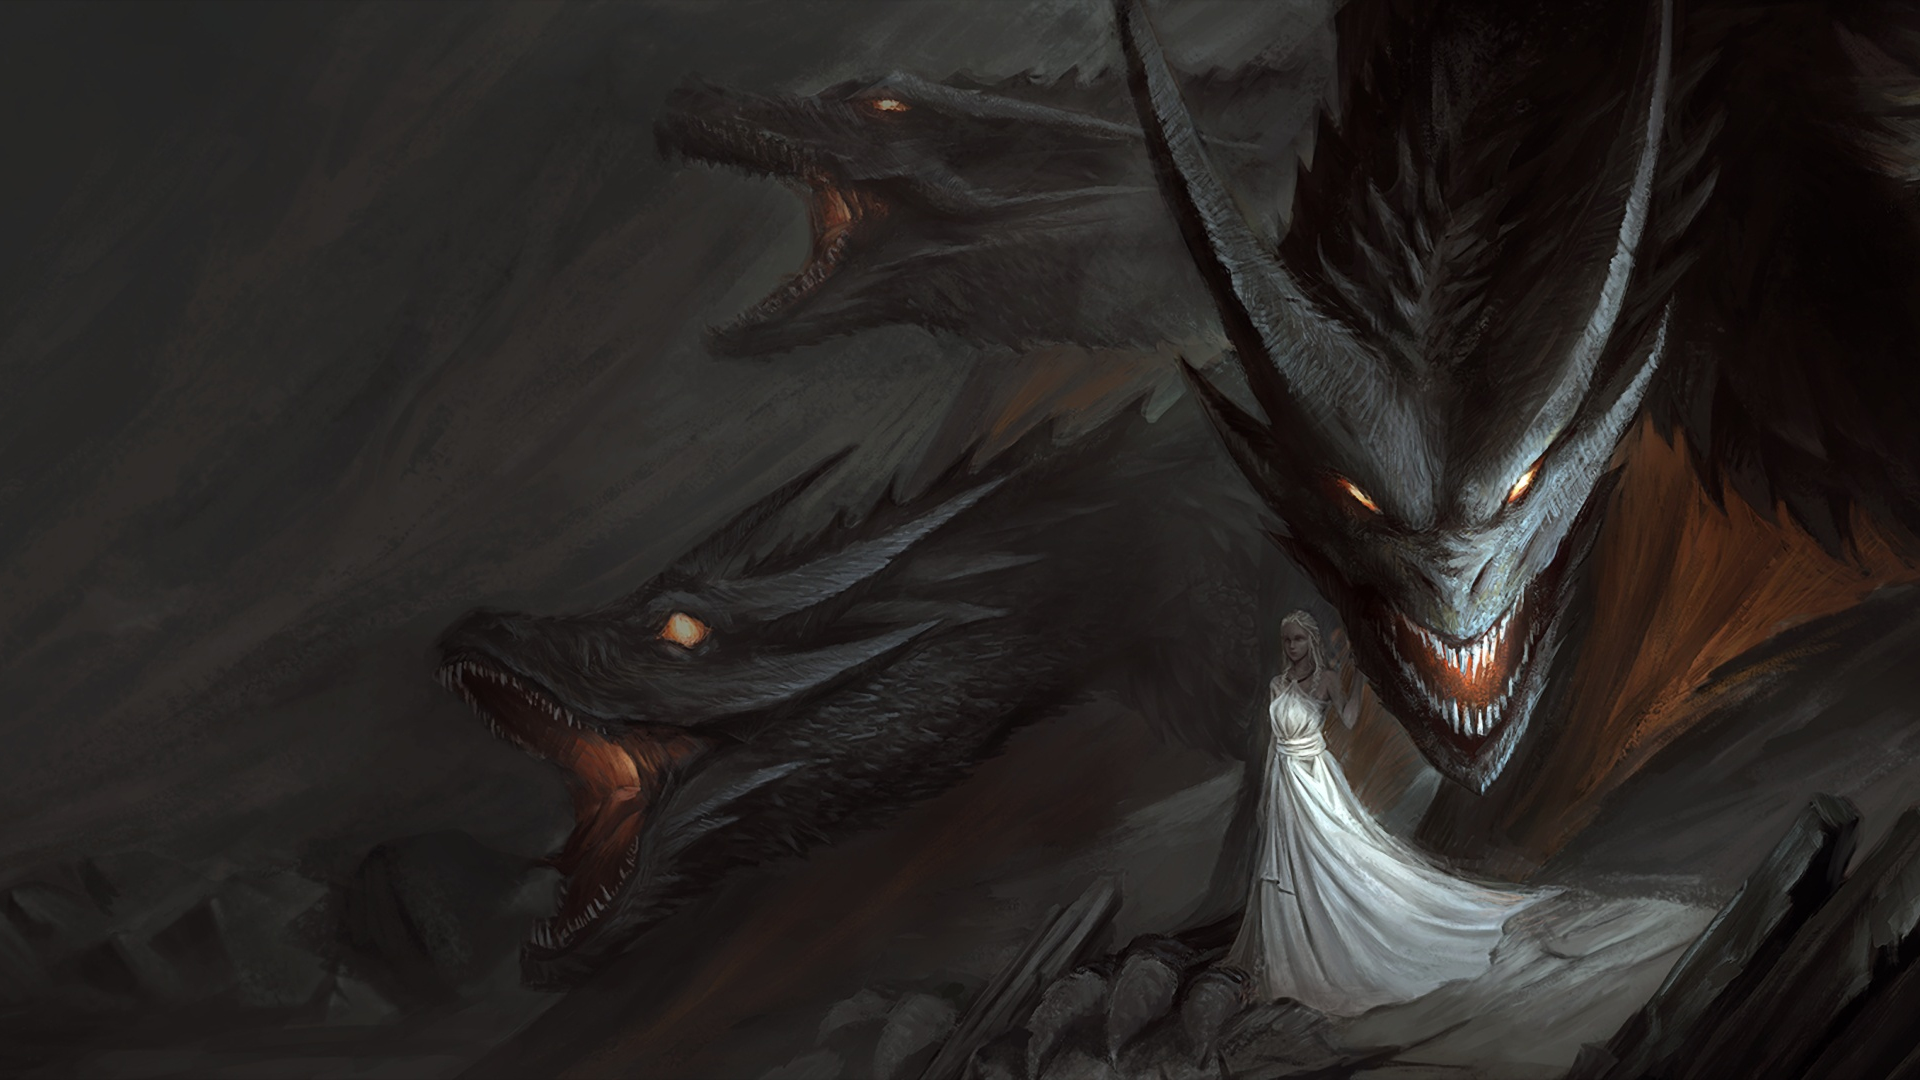 Download 1920x1080 Wallpaper Dragon Queen With Dragons Art Game Of